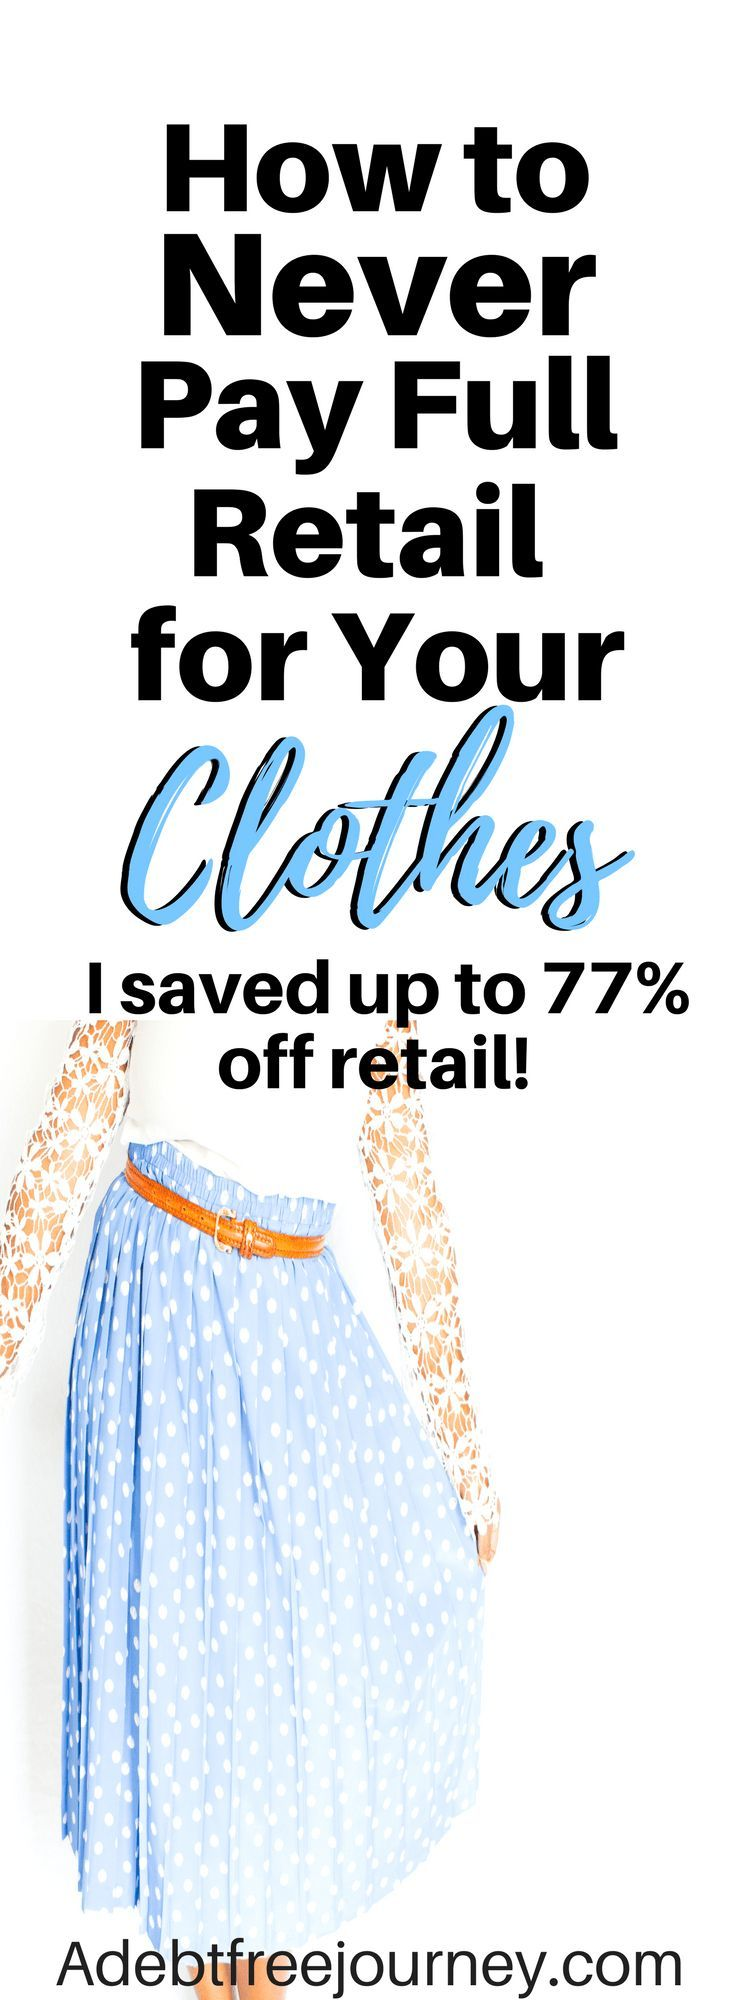 Buying clothes gets pretty expensive, especially when you're trying to stay on budget and pay off debt. Find out how to save money on clothes and never pay full retail price again. By using these tips, I saved up to 77% off retail. #savemoneyonclothes #savemoney #frugaltips #consignmentsales #thrift #cashbackpurchases